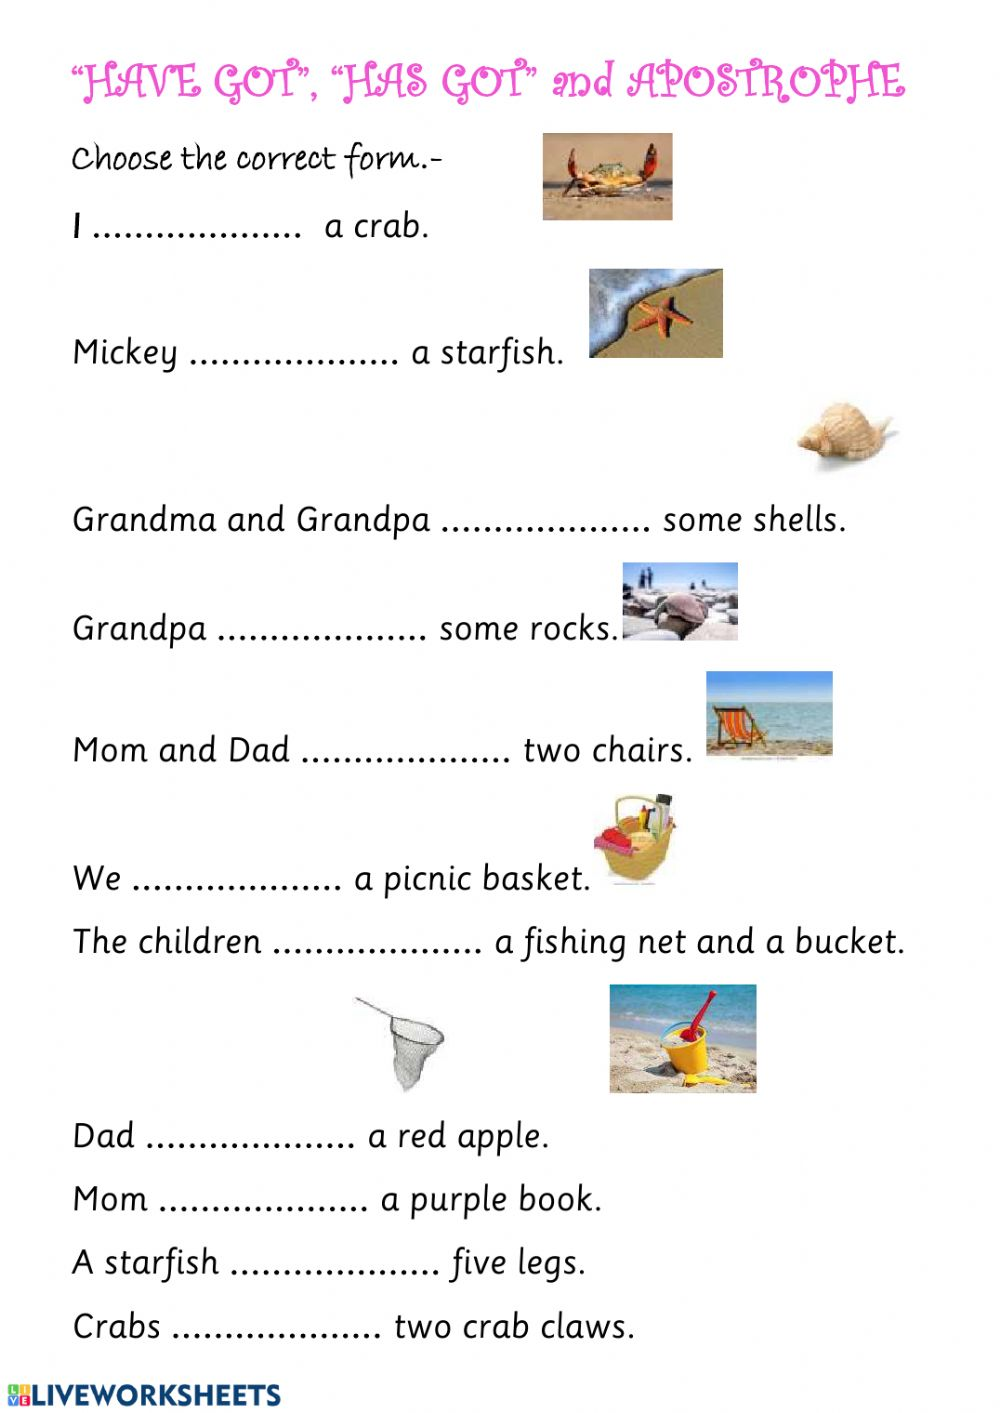 medium resolution of HAVE GOT and APOSTROPHES worksheet